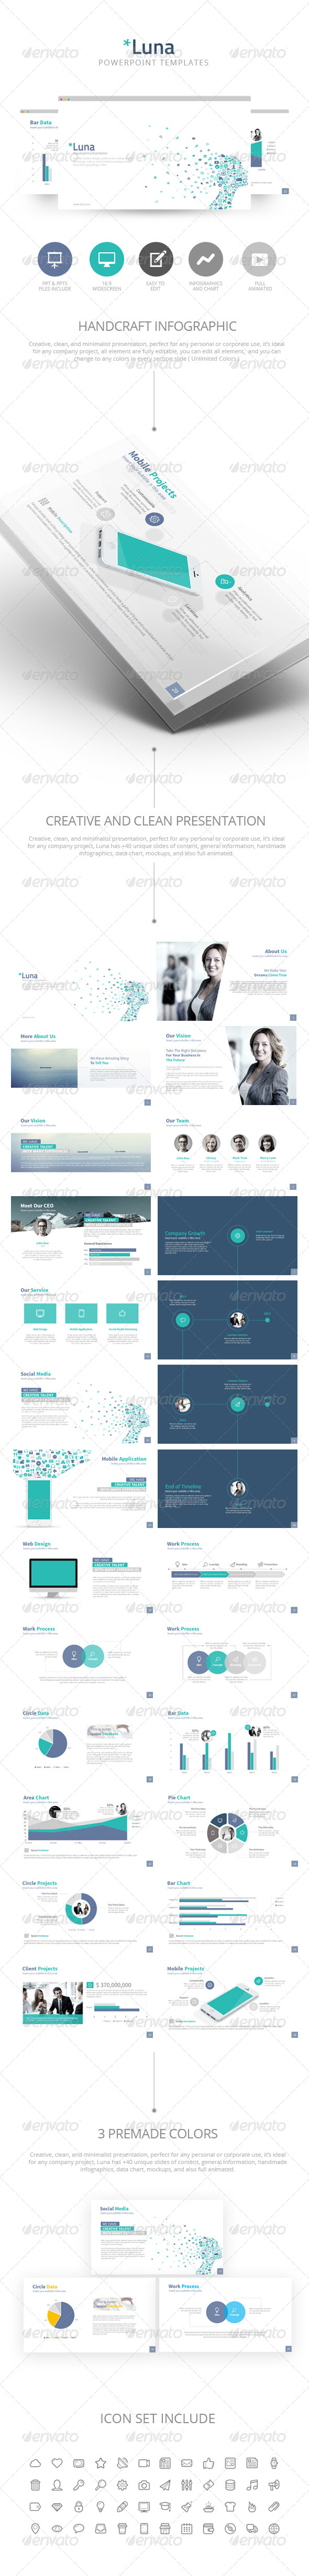 GraphicRiver Luna Powerpoint Presentation Template 8568968